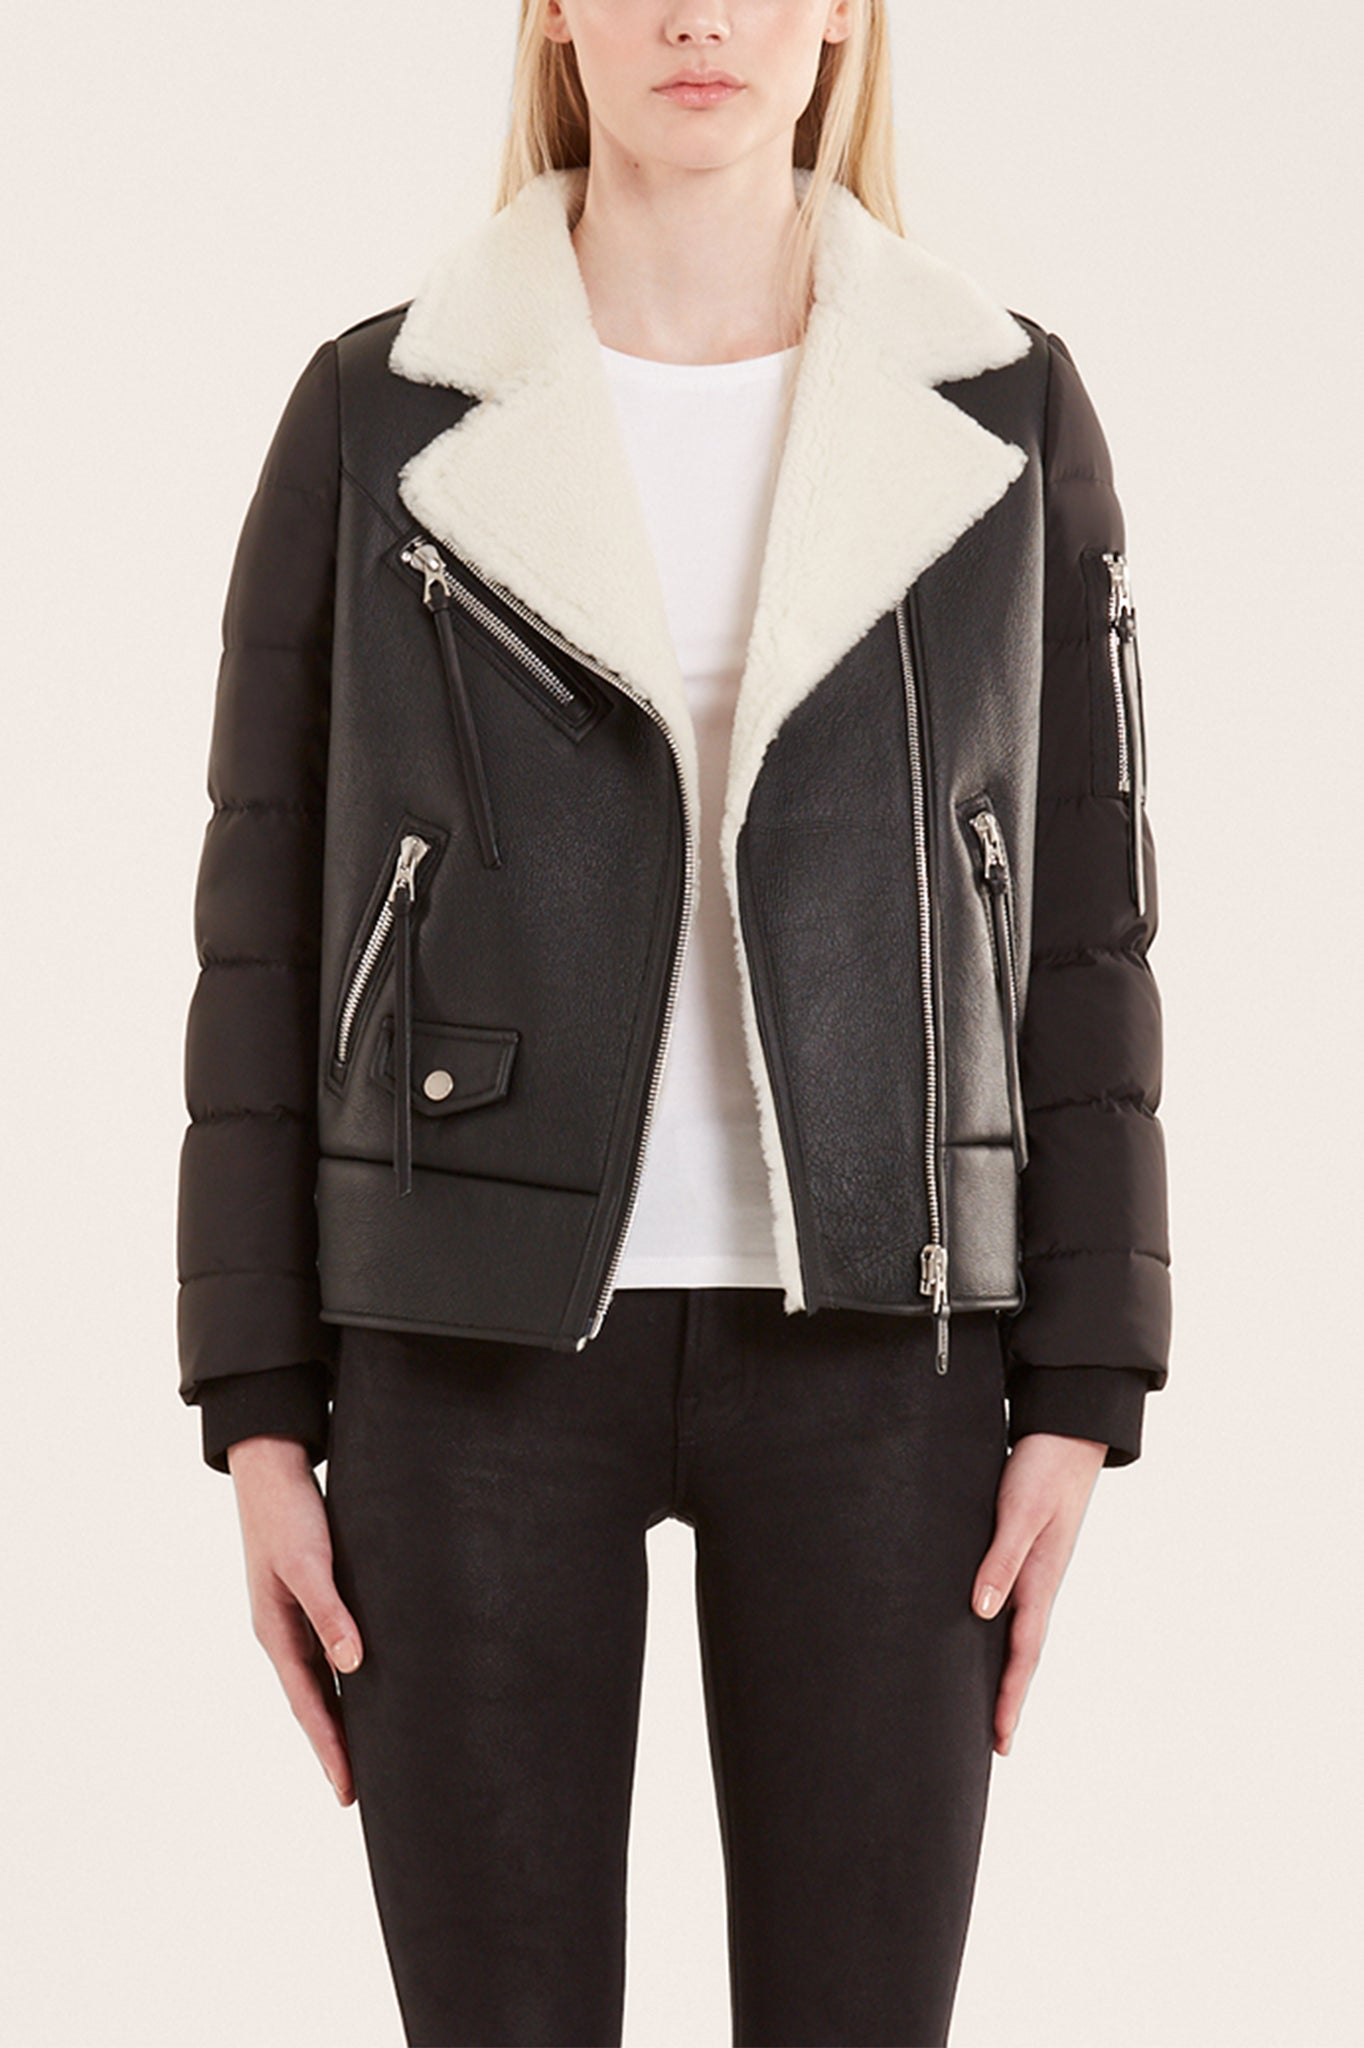 Rudsak Quilted Down Puffer and Shearling Black Leather Jacket